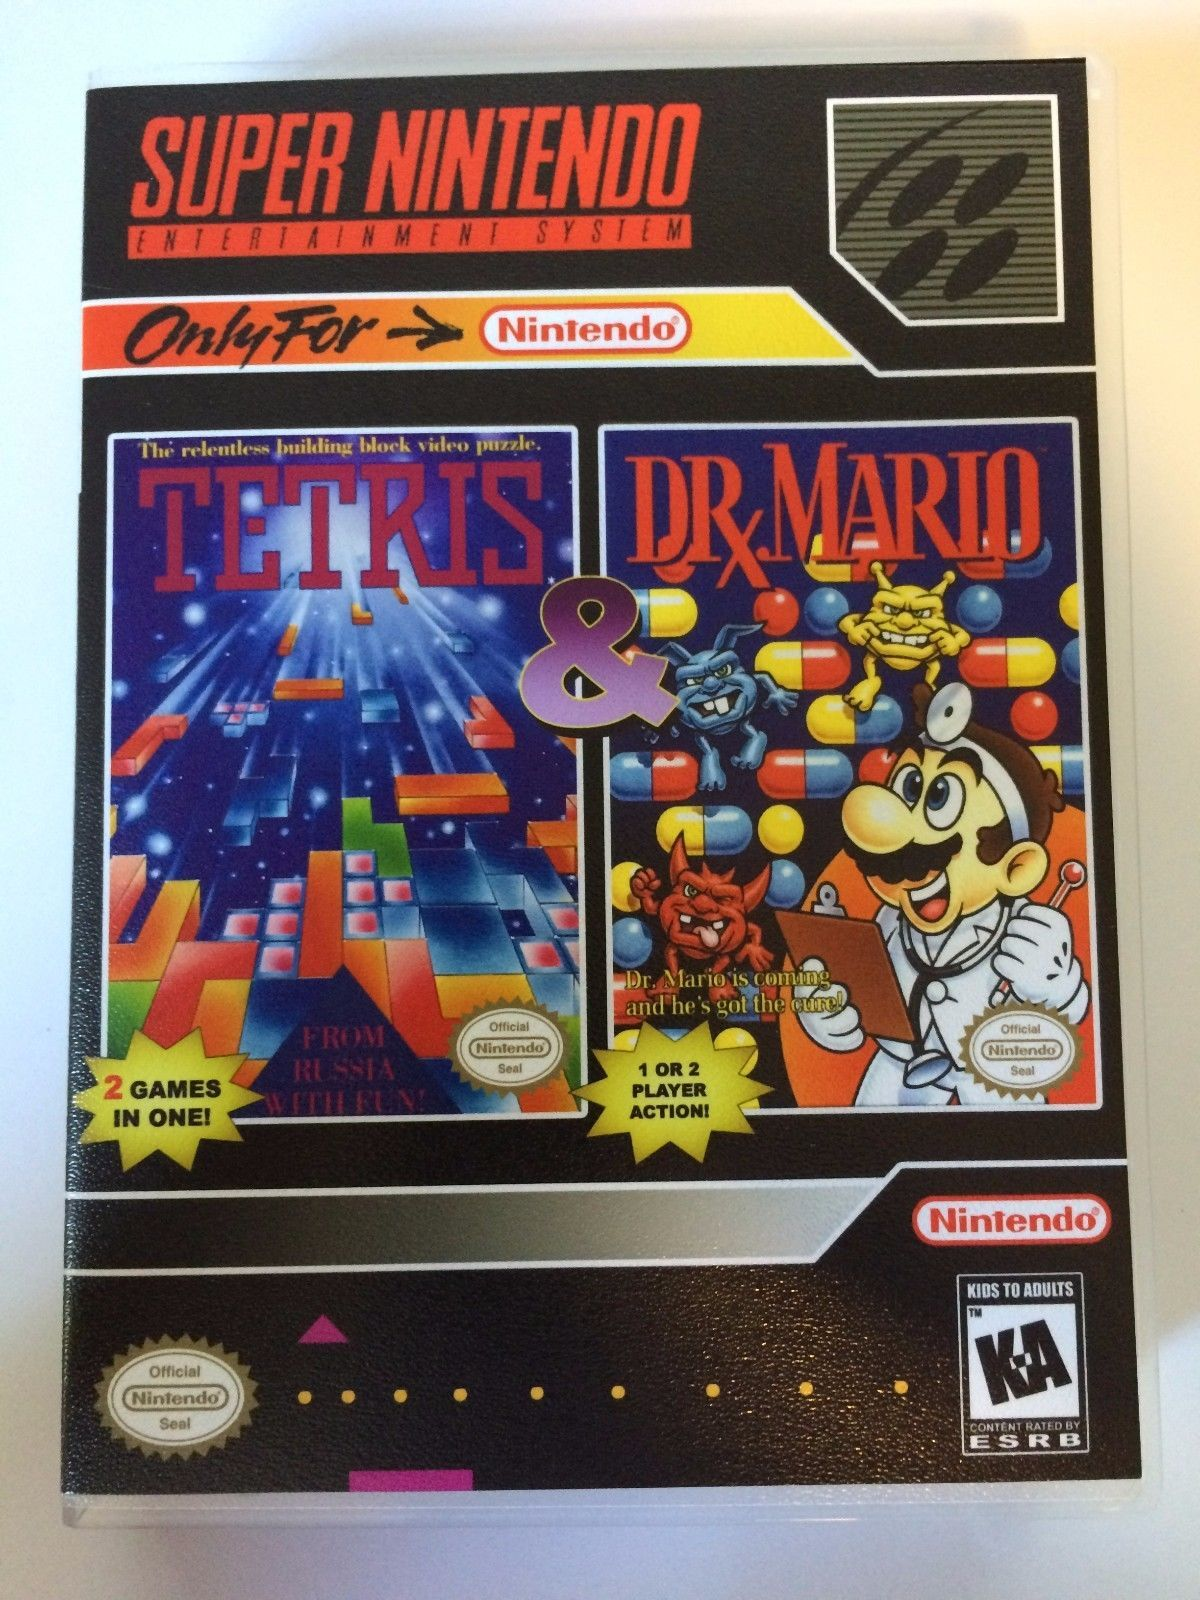 Tetris and Dr. Mario - Super Nintendo - Replacement Case - No Game